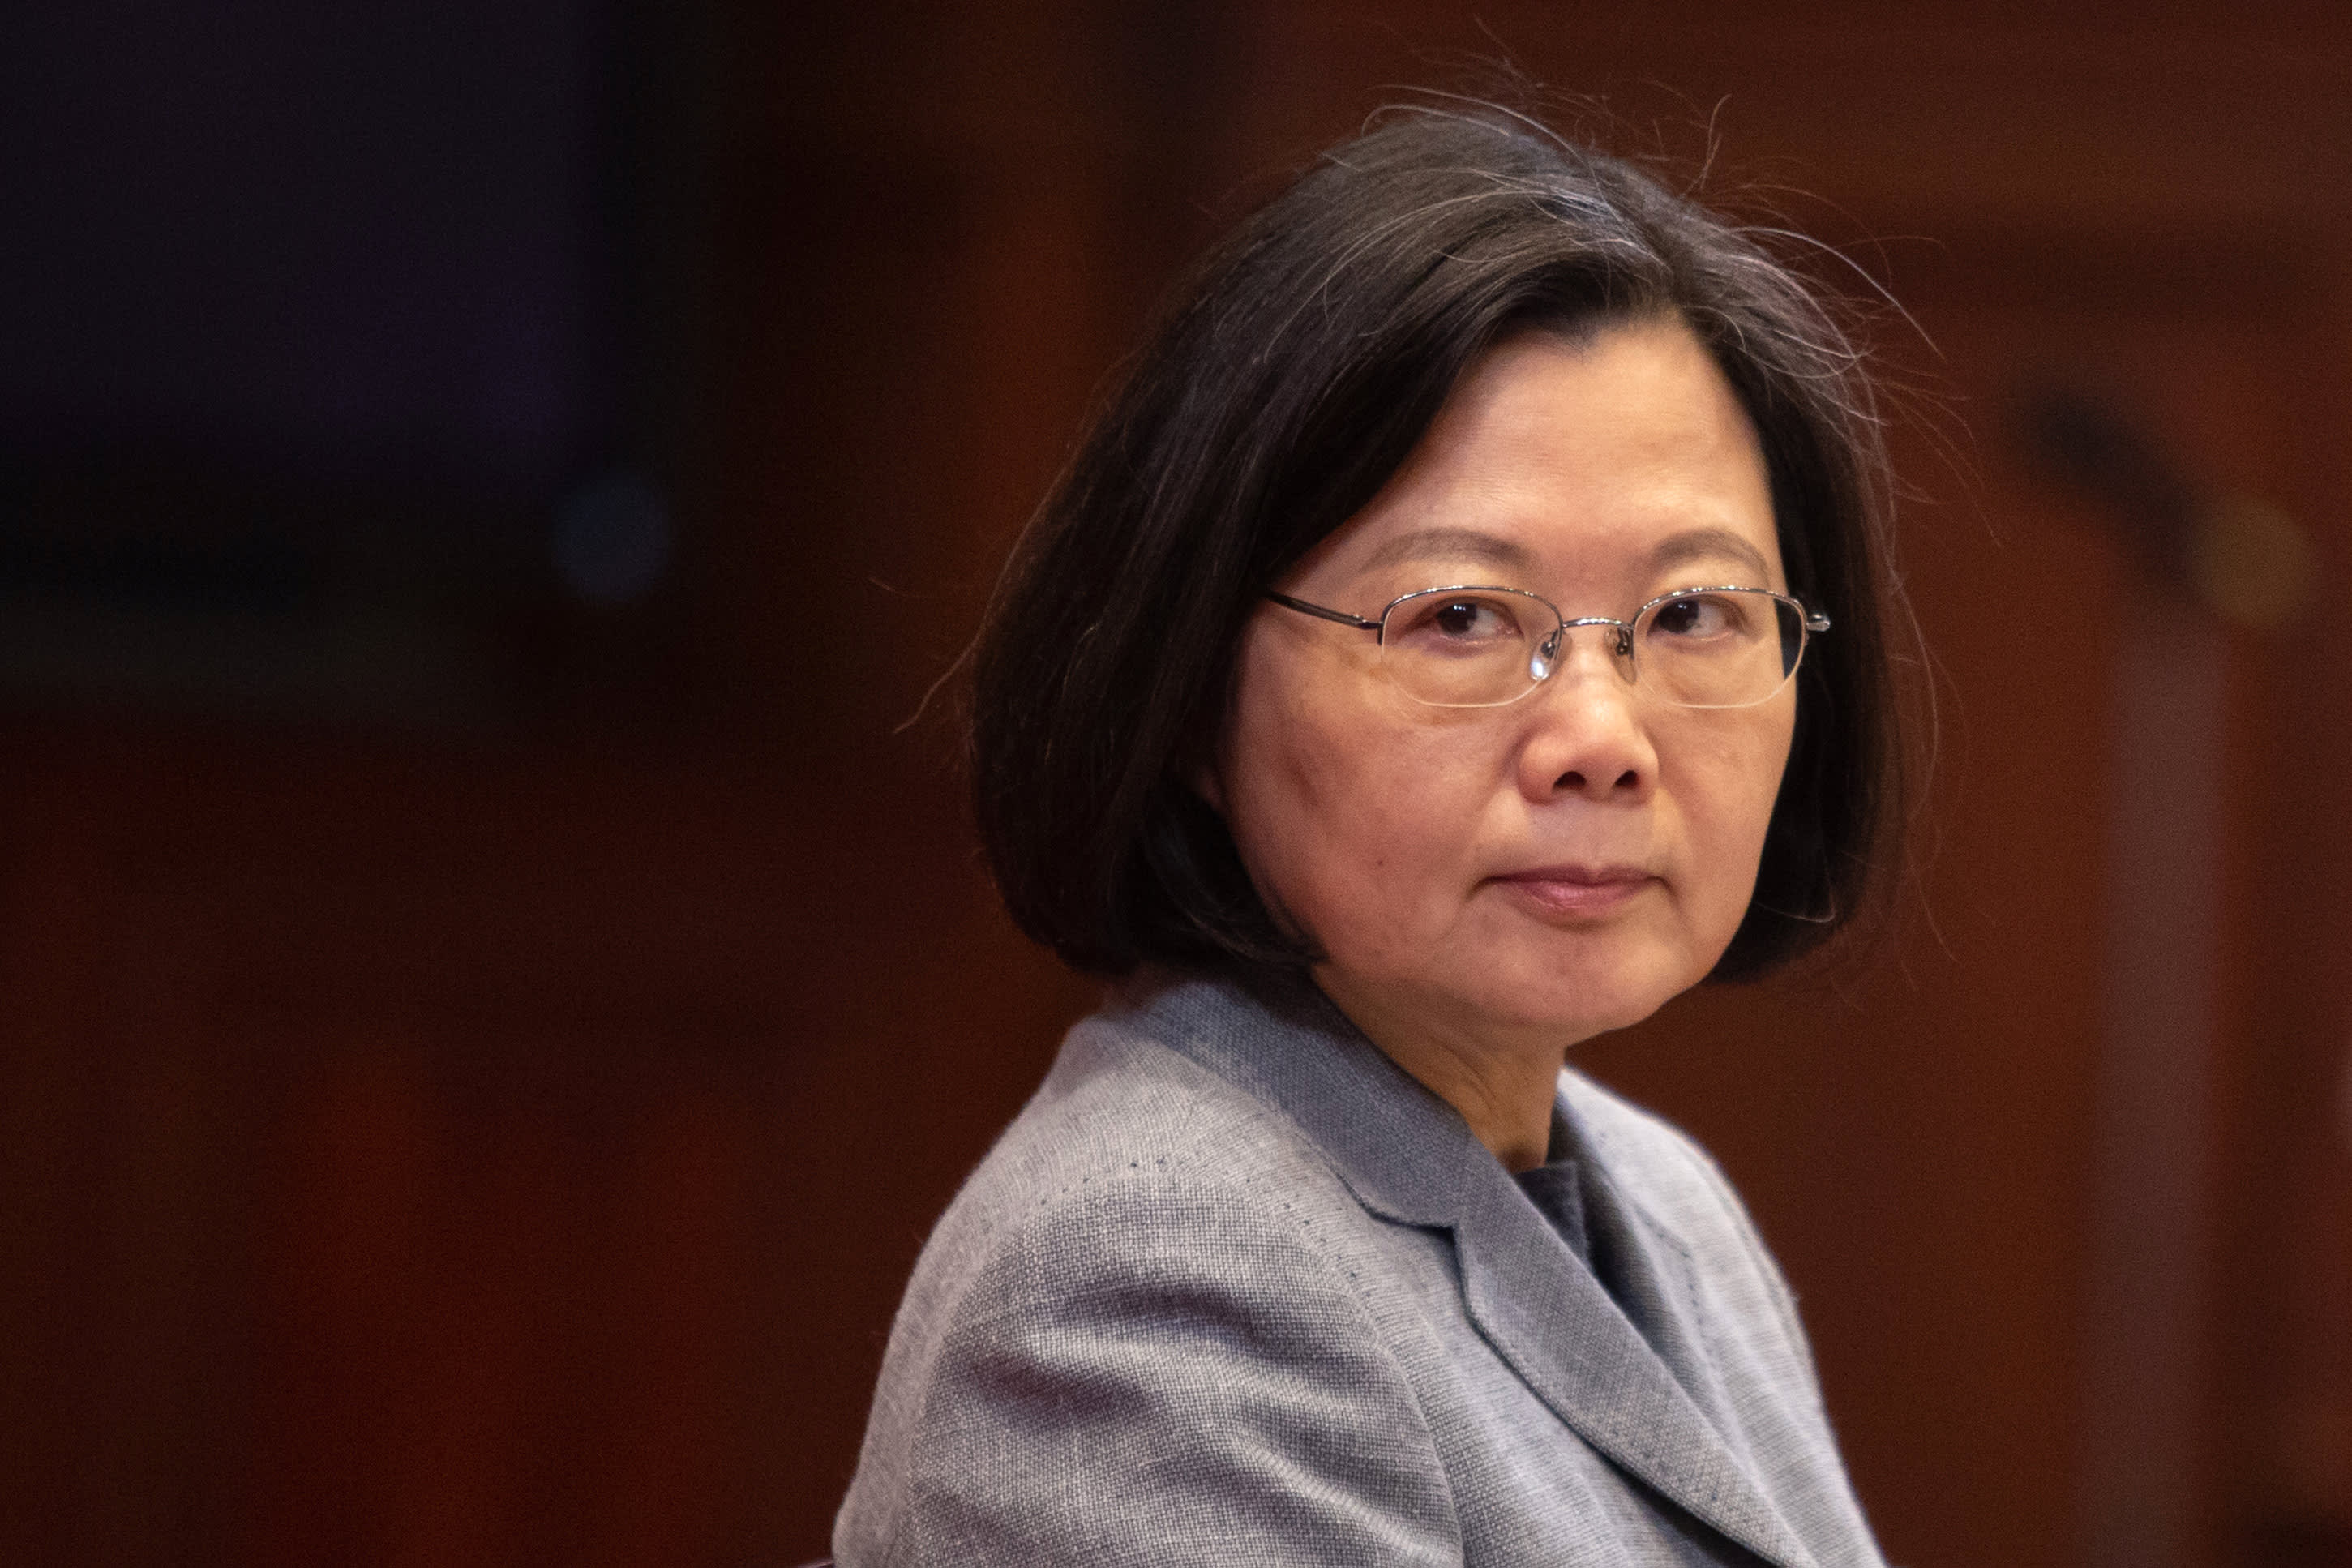 China has stepped up efforts to infiltrate Taiwan, president Tsai Ing-wen says